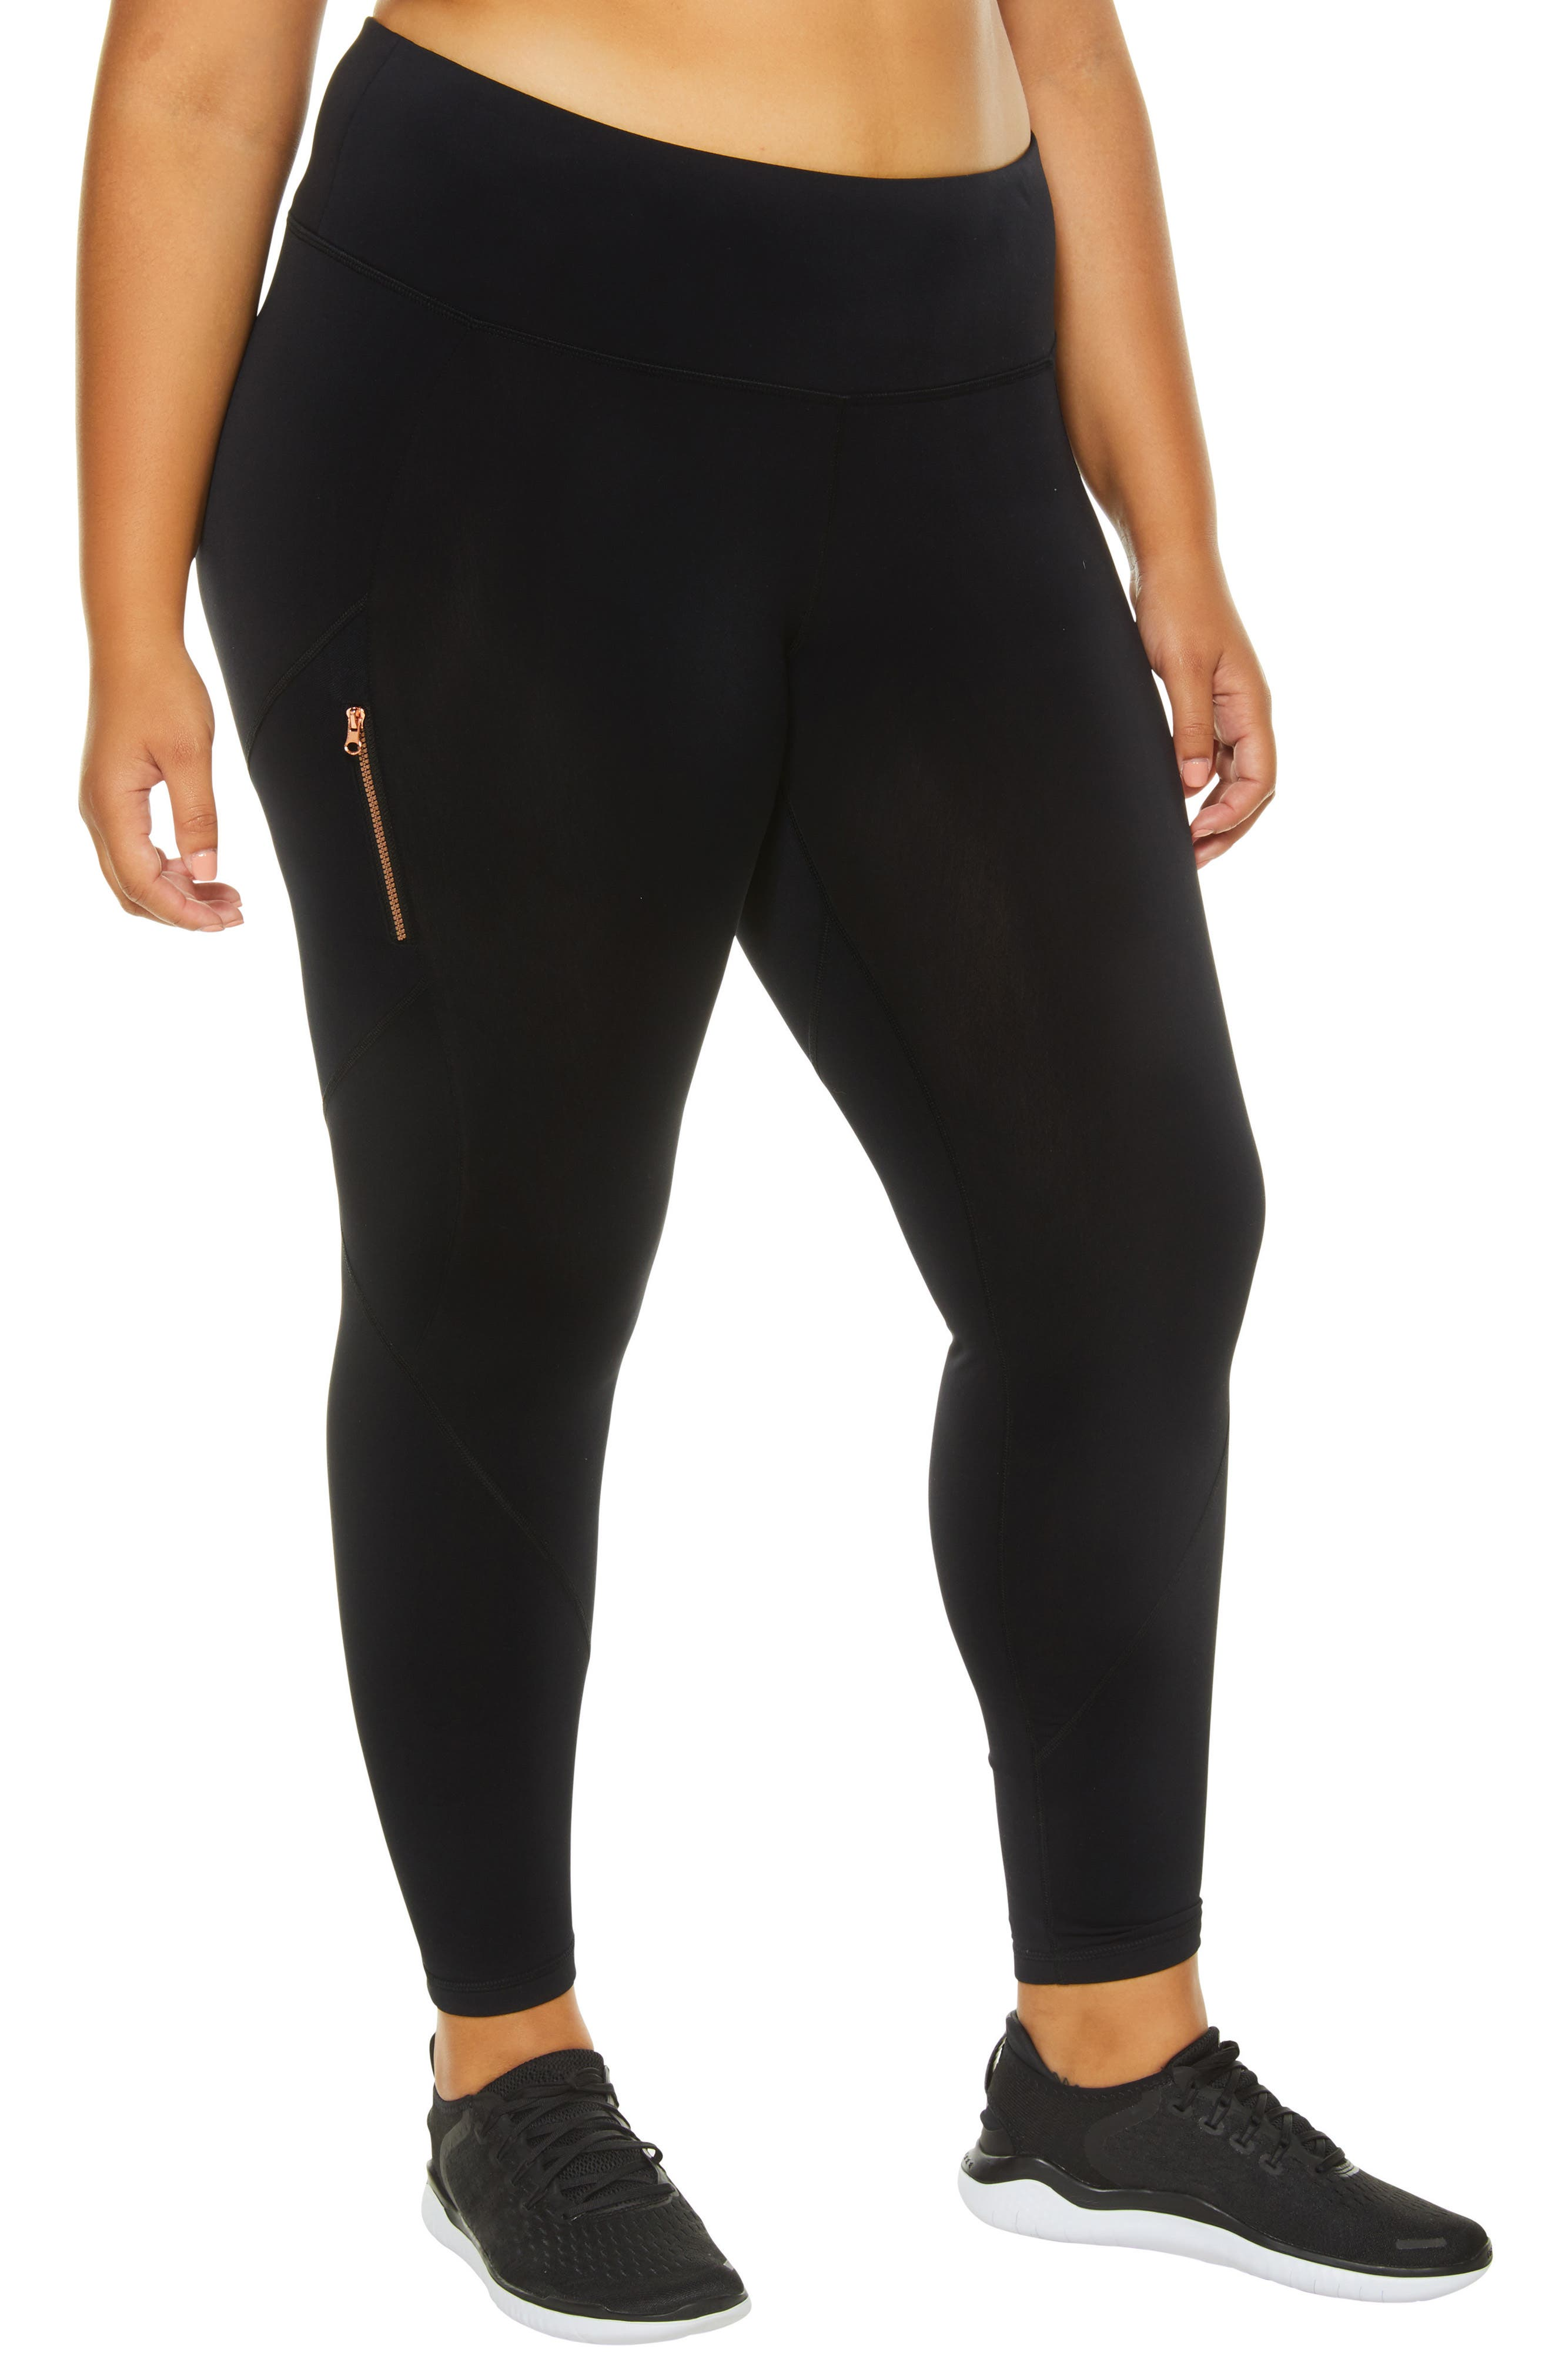 SHAPE ACTIVEWEAR Blaze Fleece Leggings, Main, color, 001